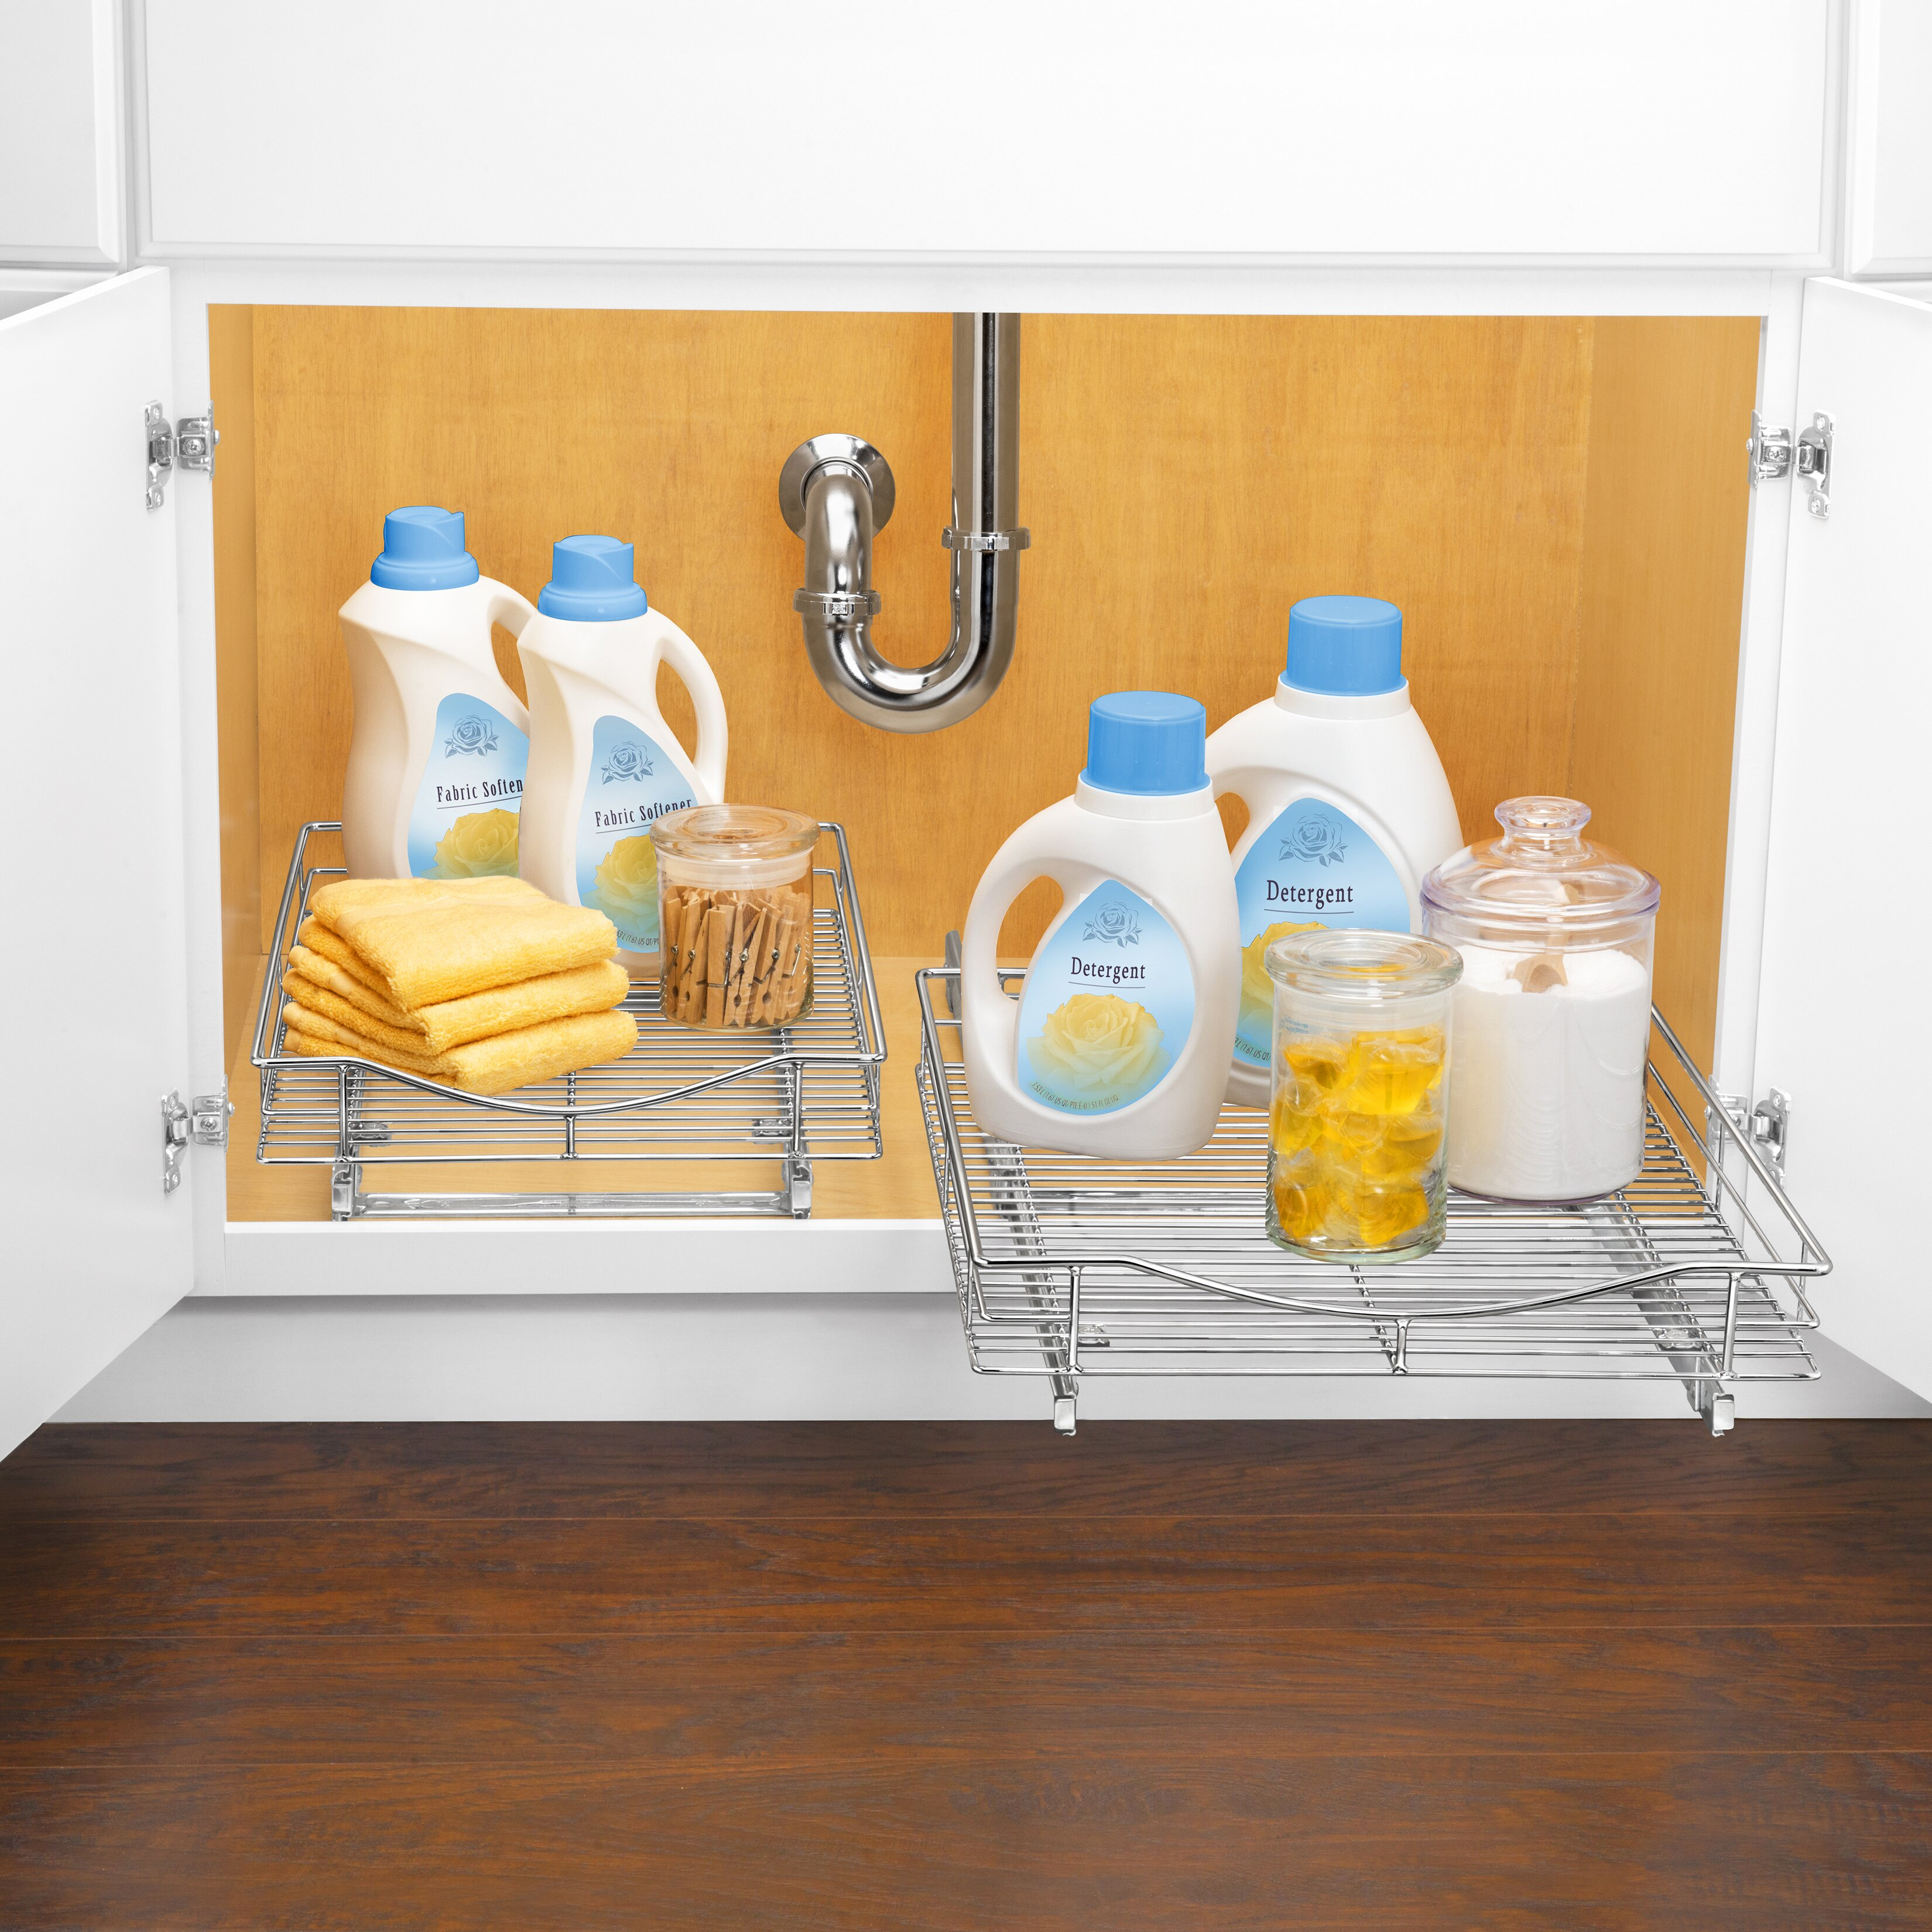 Bathroom Under Cabinet Storage Lynk Lynk Professionalr Roll Out Cabinet Organizer Pull Out